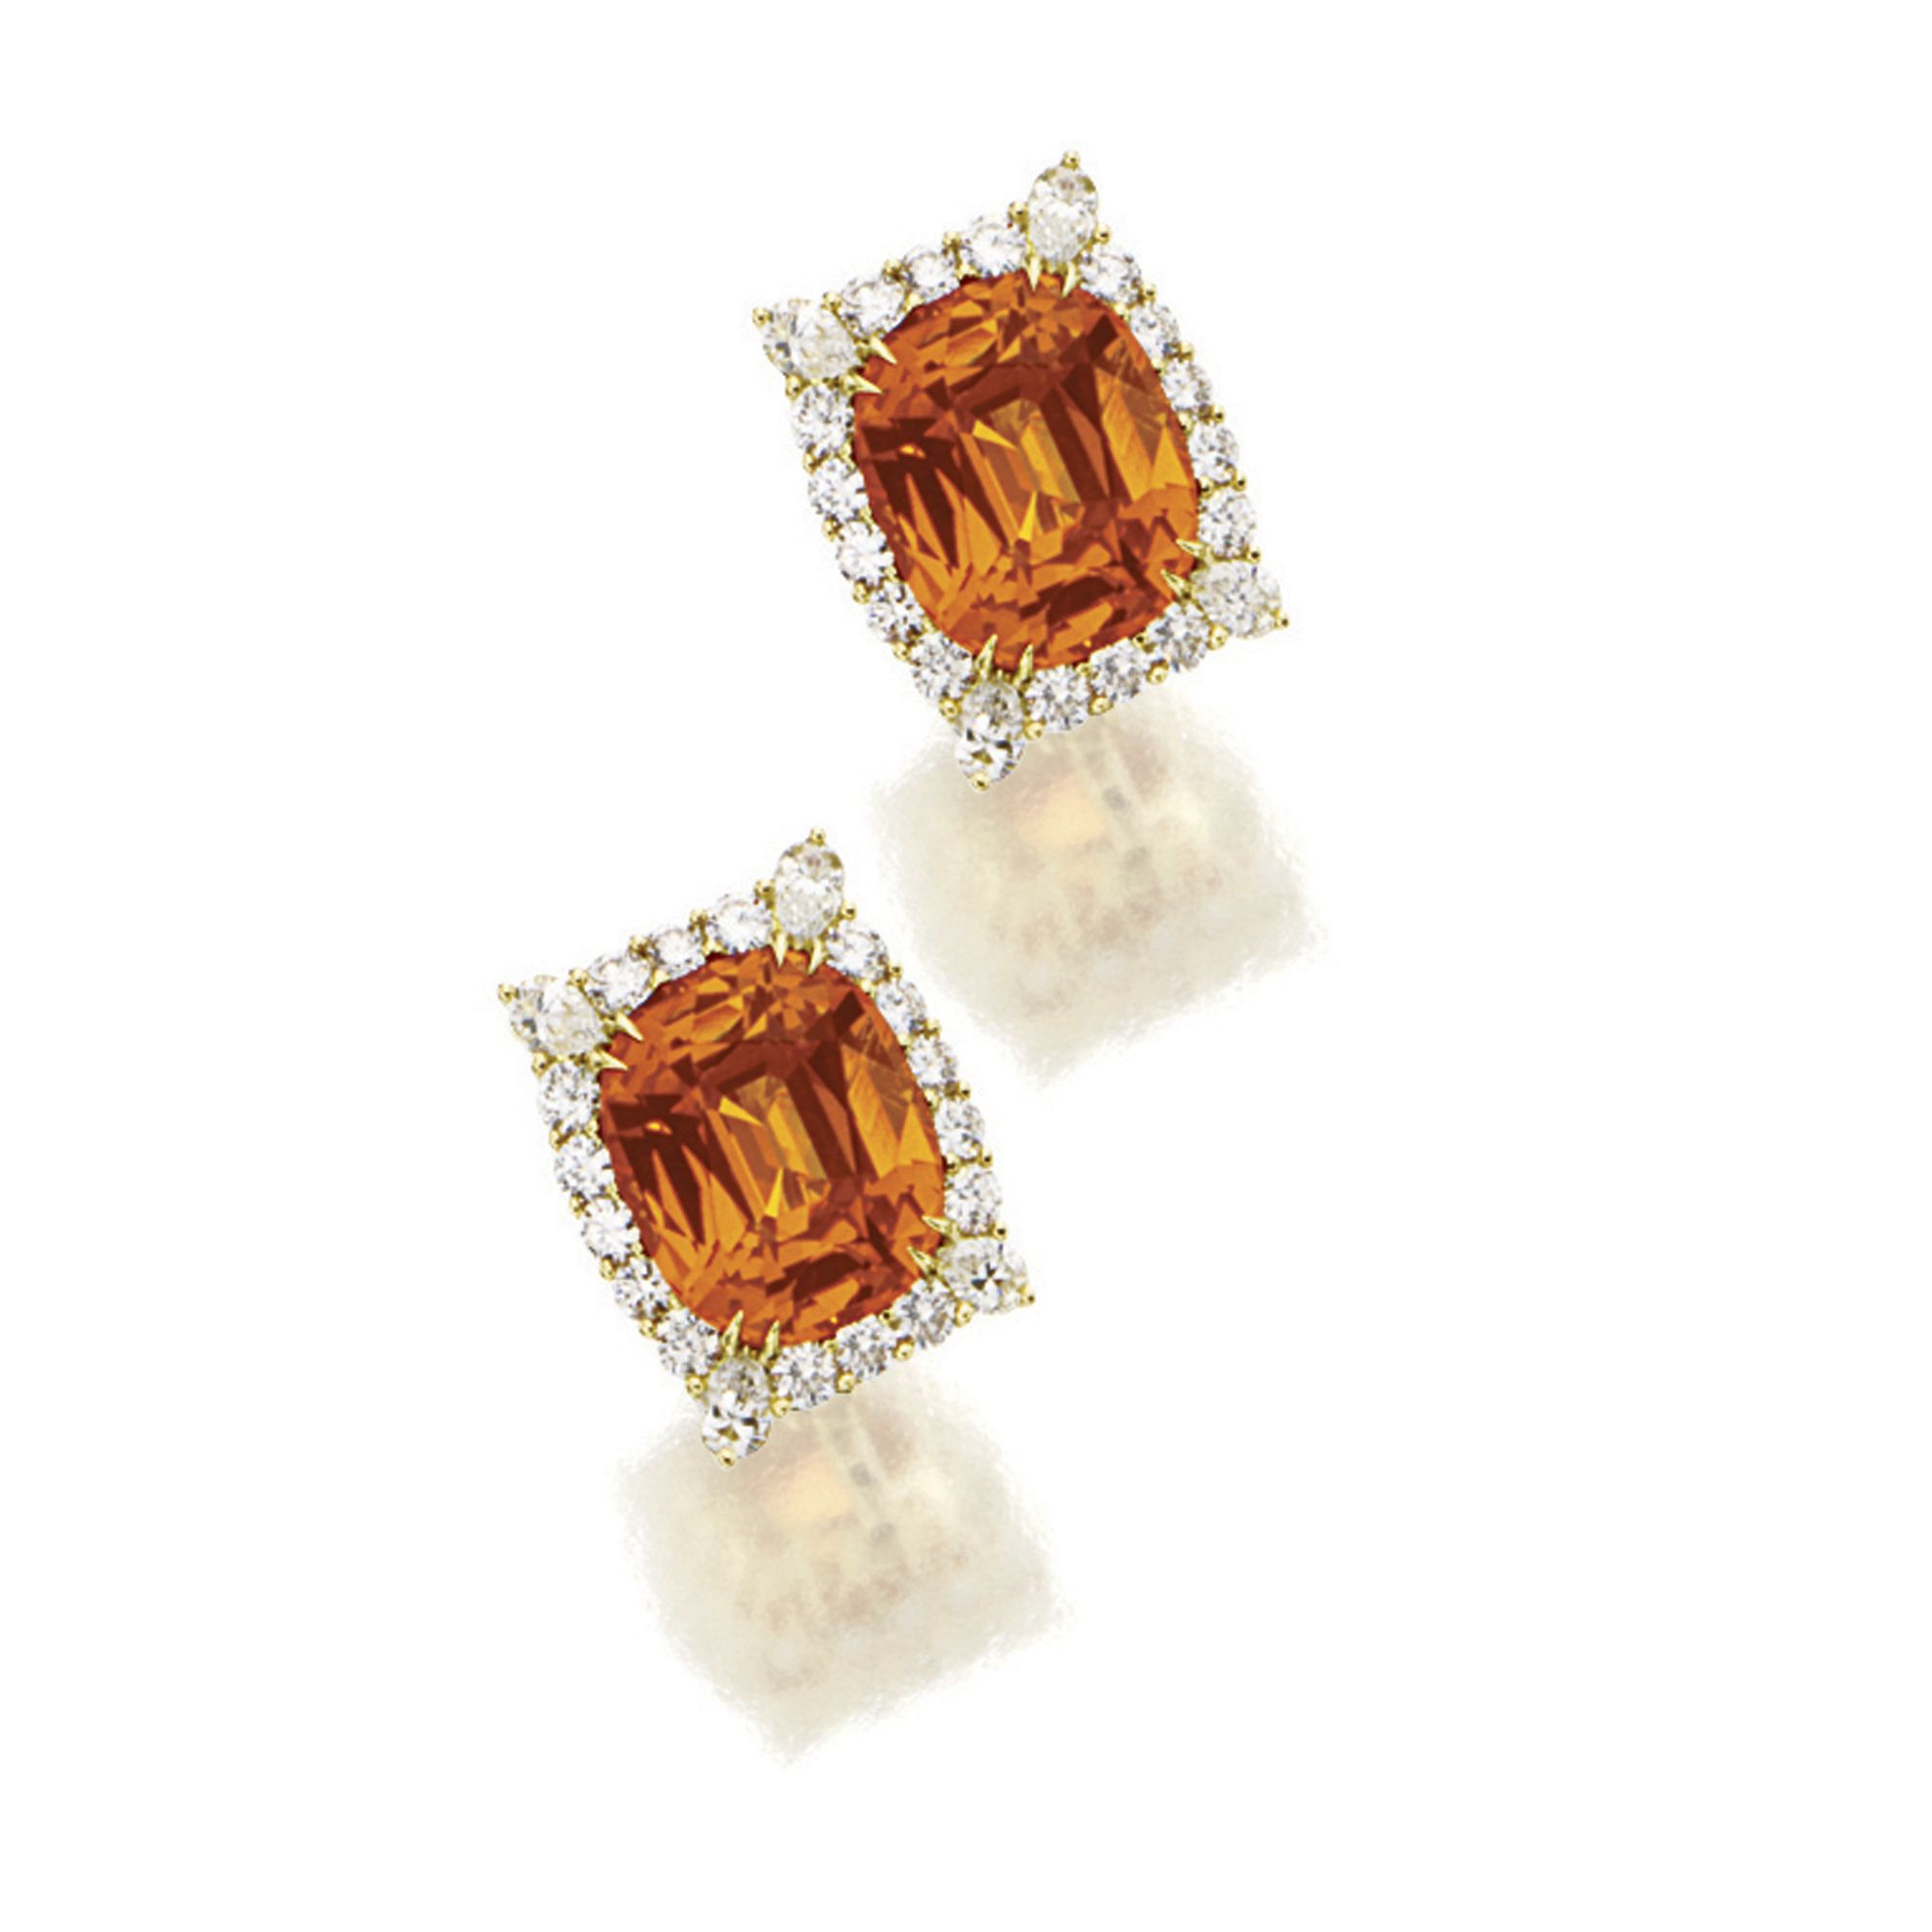 """PAIR OF SPESSARTINE GARNET AND DIAMOND EAR CLIPS. Each set with an oval spessartine garnet altogether weighing approximately 18.88 carats, encircled by brilliant-cut diamonds, within a stylised diamond-set basket, the diamonds altogether weighing approximately 2.15 carats, mounted in 18 karat yellow gold, clip and post fittings, signed """"Agapoff""""."""